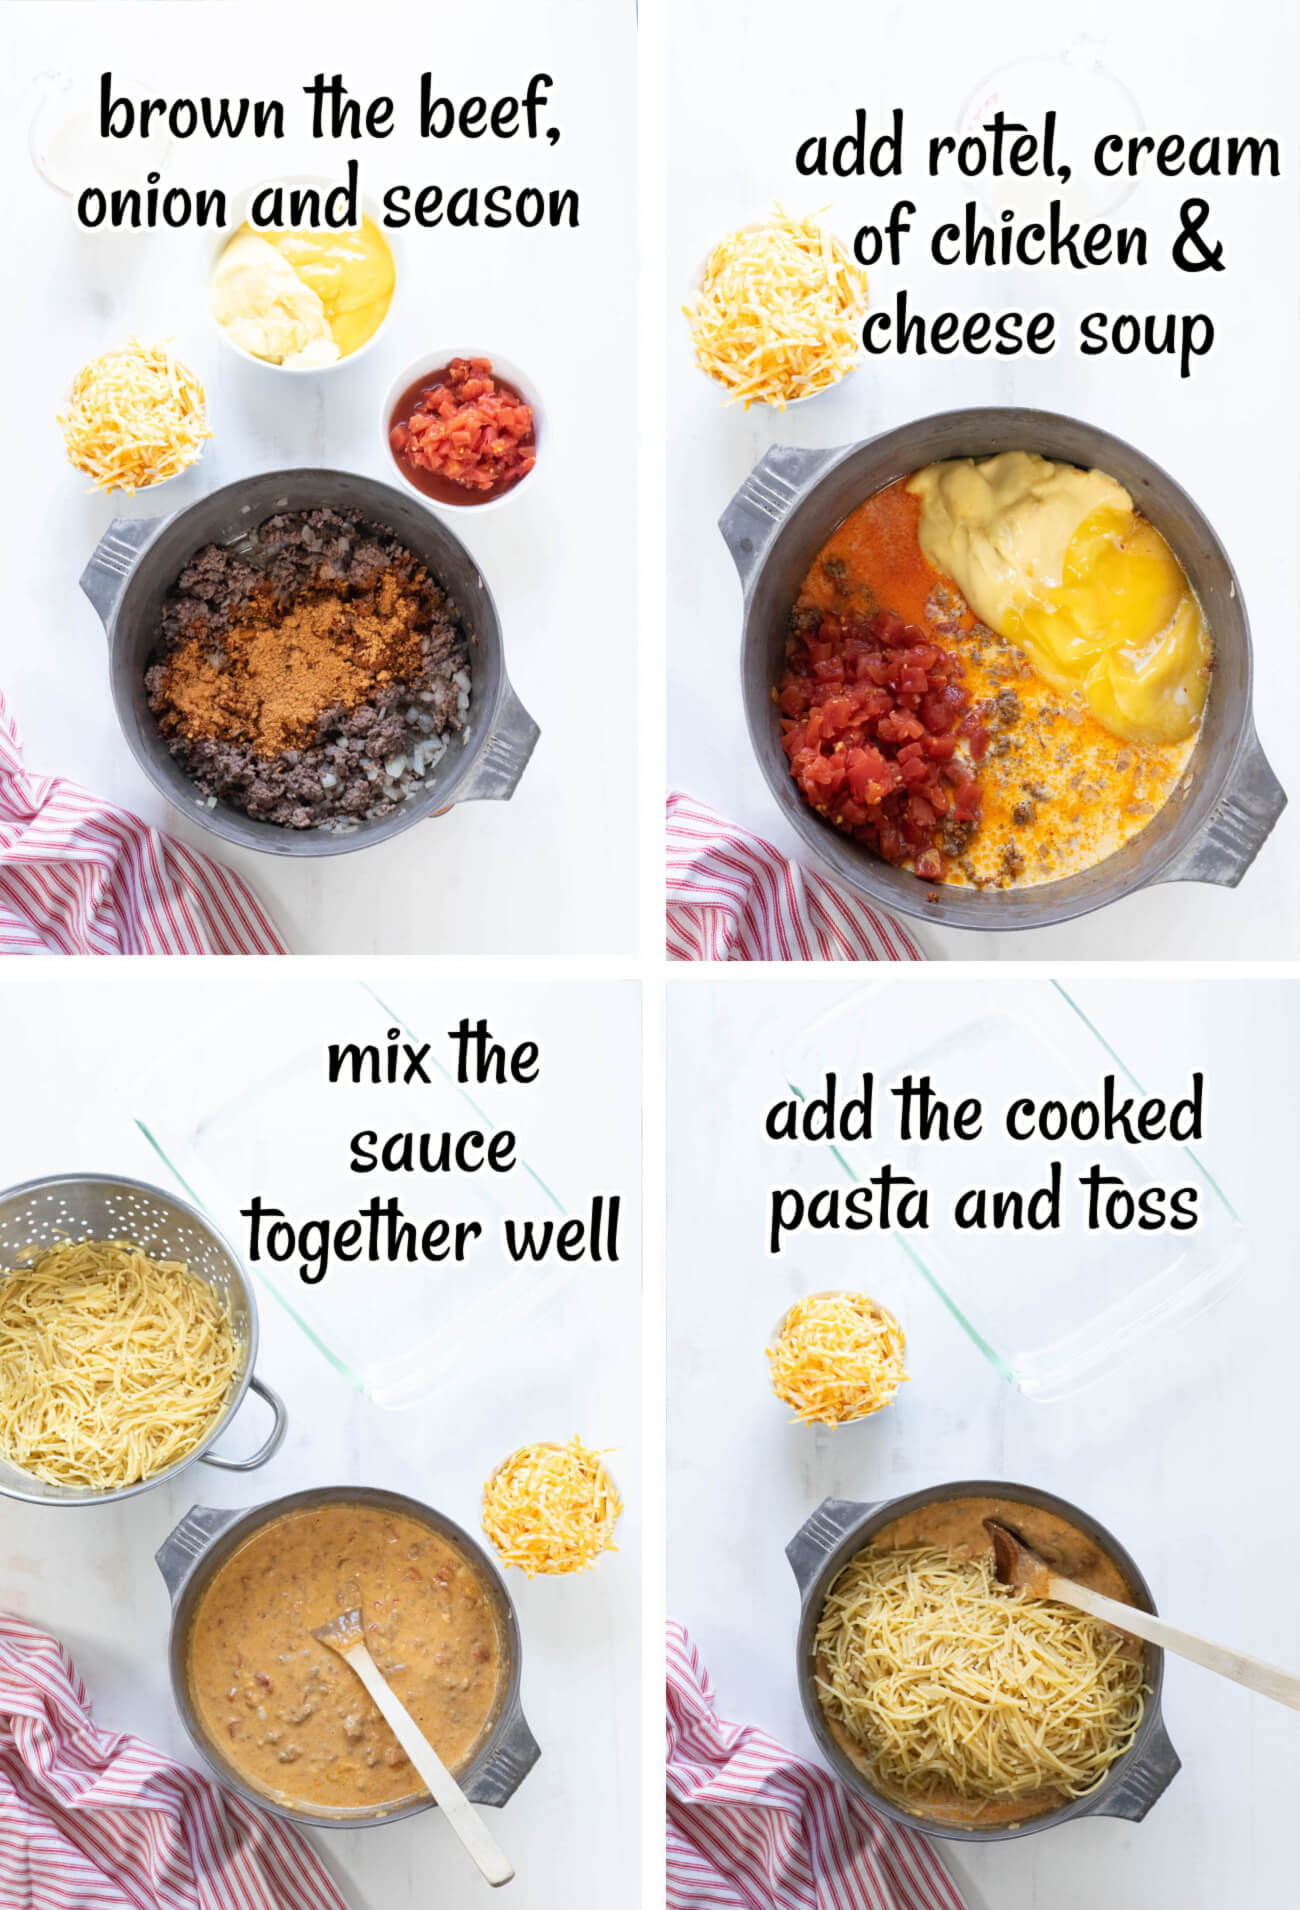 photo collage showing the first four steps to make taco spaghetti recipe.